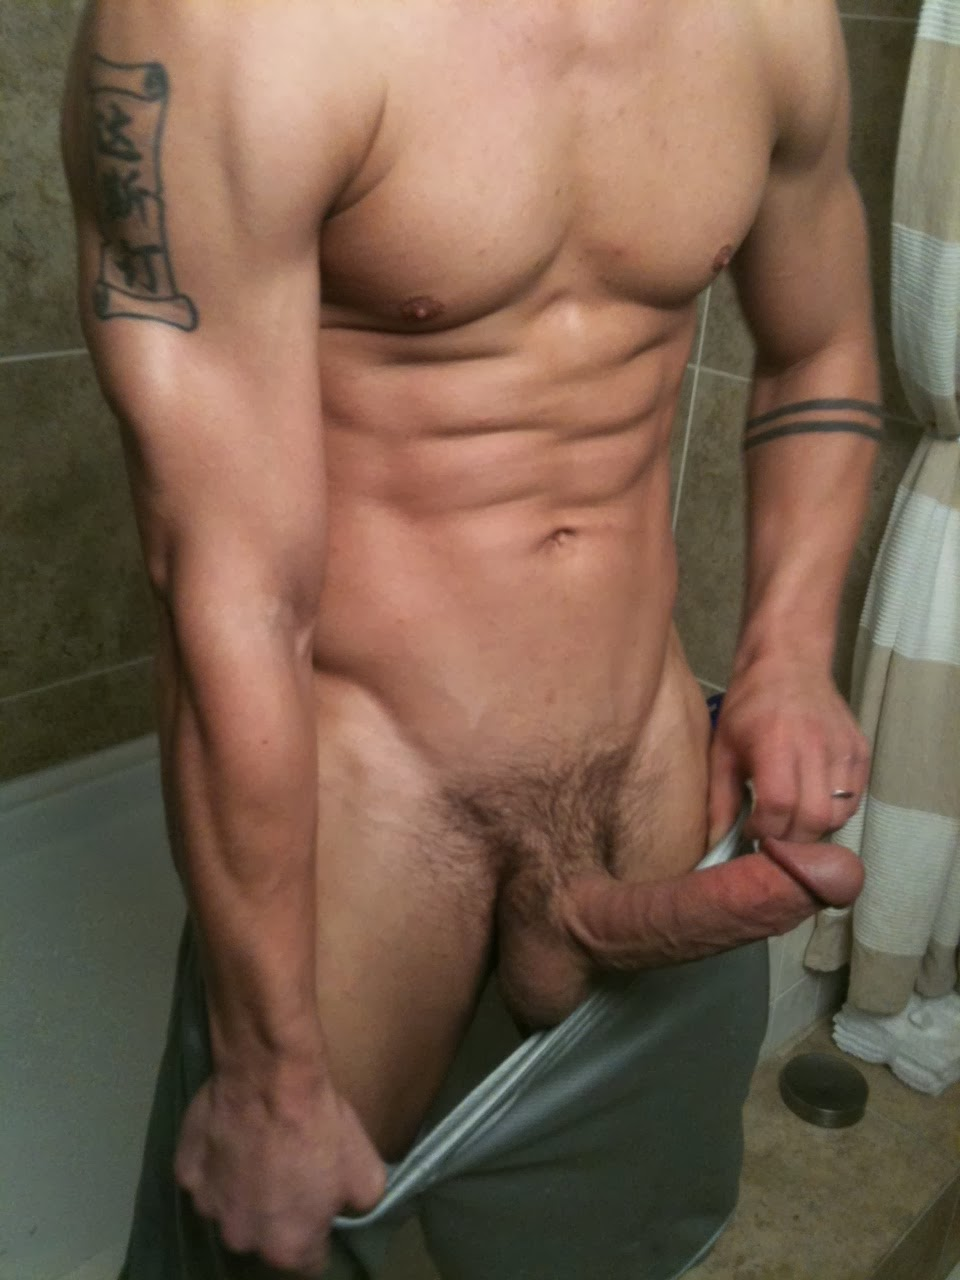 Big gay cock bathroom